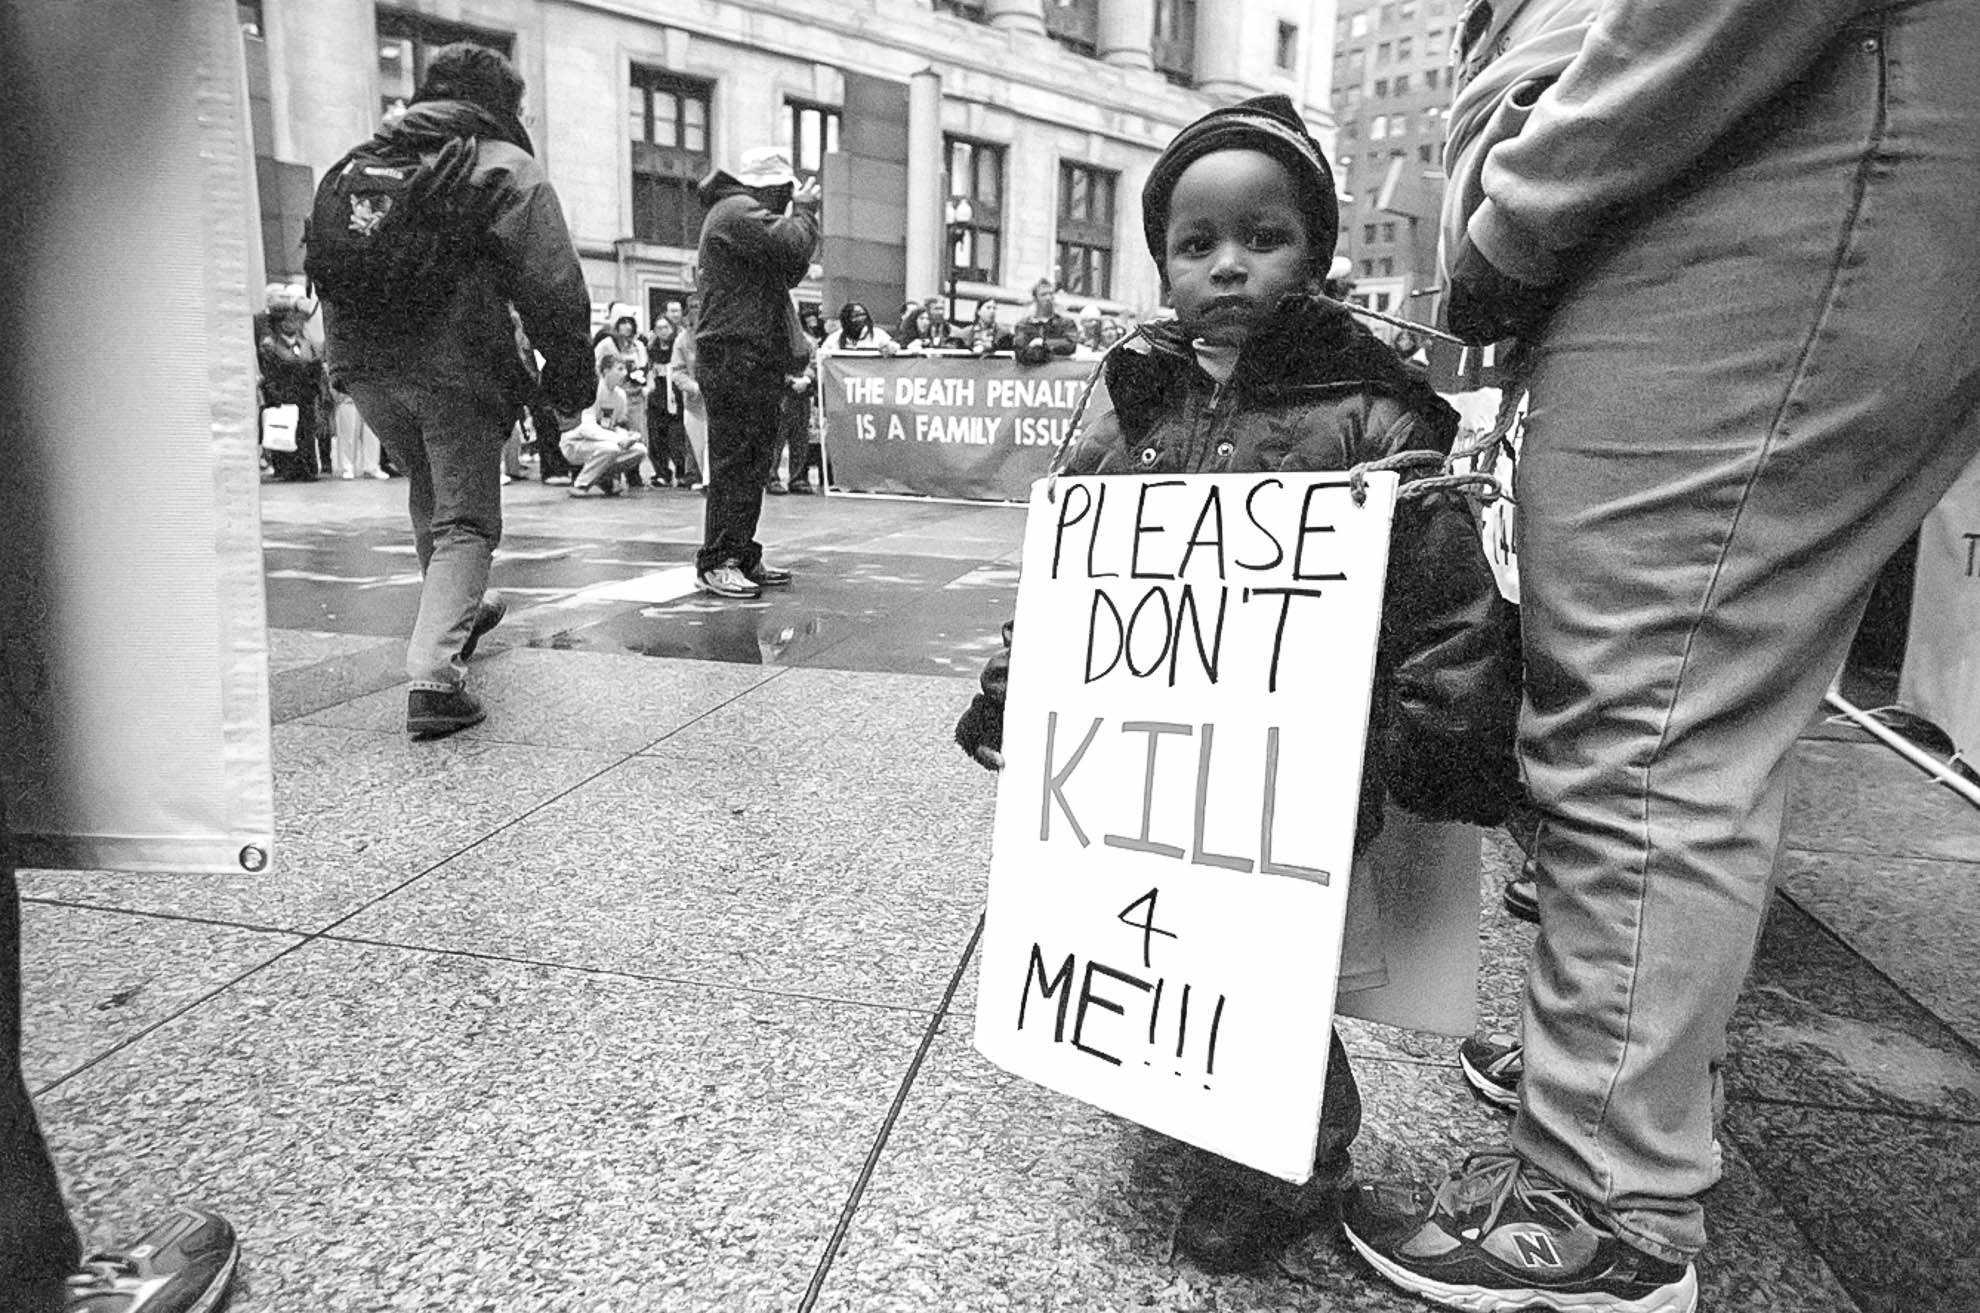 death penalty, photography, photos, execution, prison, documentary, north carolina, protest, chicago, children, kids